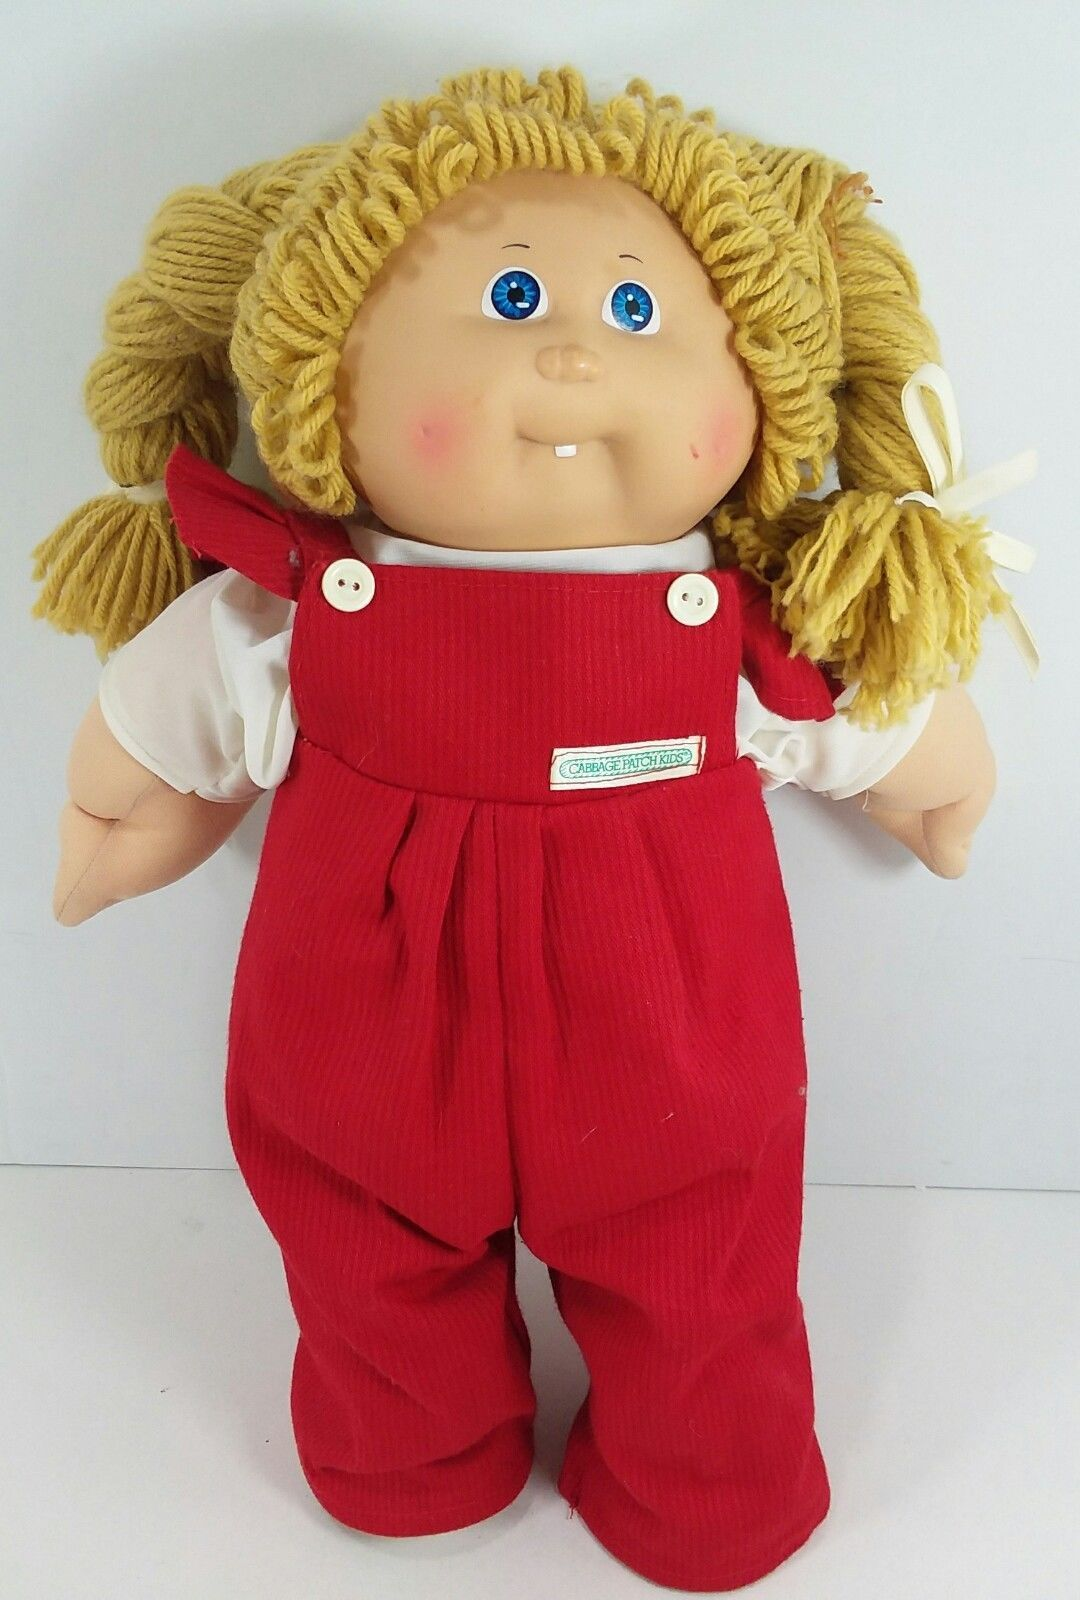 Vintage 1984 Cabbage Patch Kids Doll By Coleco Signed Xavier Roberts No Shoes Vintage Cabbage Patch Dolls Cabbage Patch Kids Cabbage Patch Kids Dolls